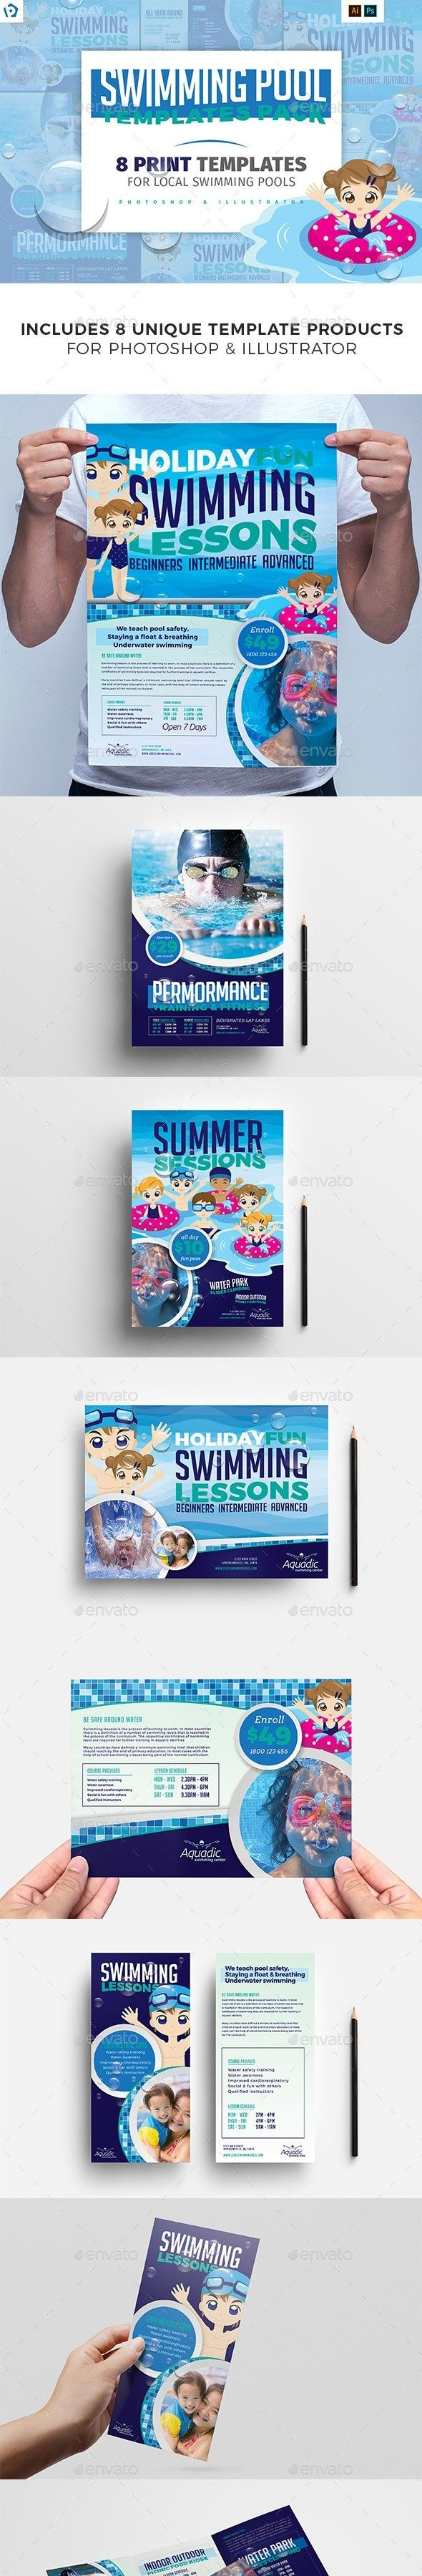 Ai Banner Brandpacks Brochure Template Dl Flyer Illustractor